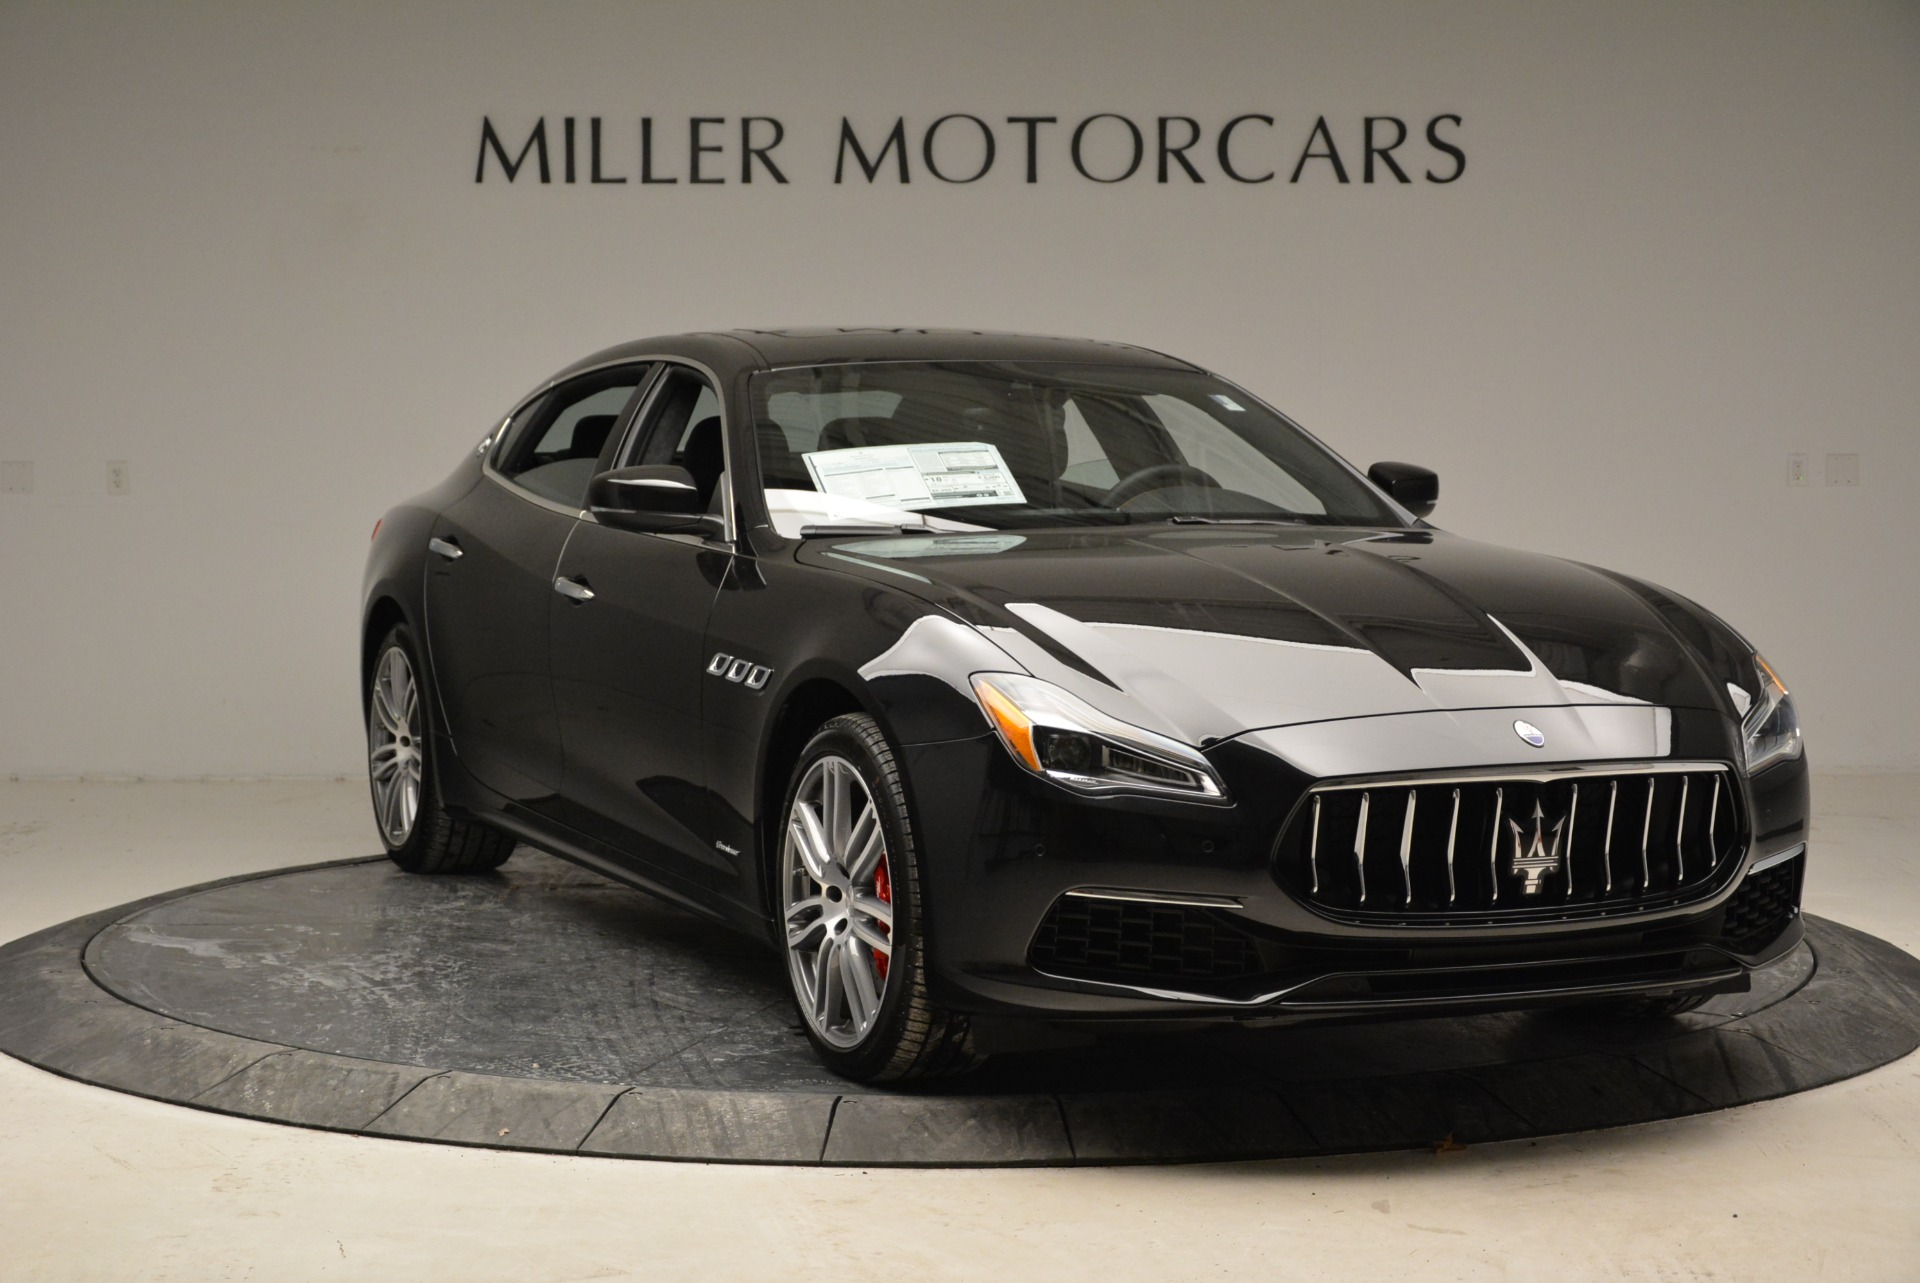 New 2018 Maserati Quattroporte S Q4 GranLusso For Sale In Greenwich, CT 1815_p11